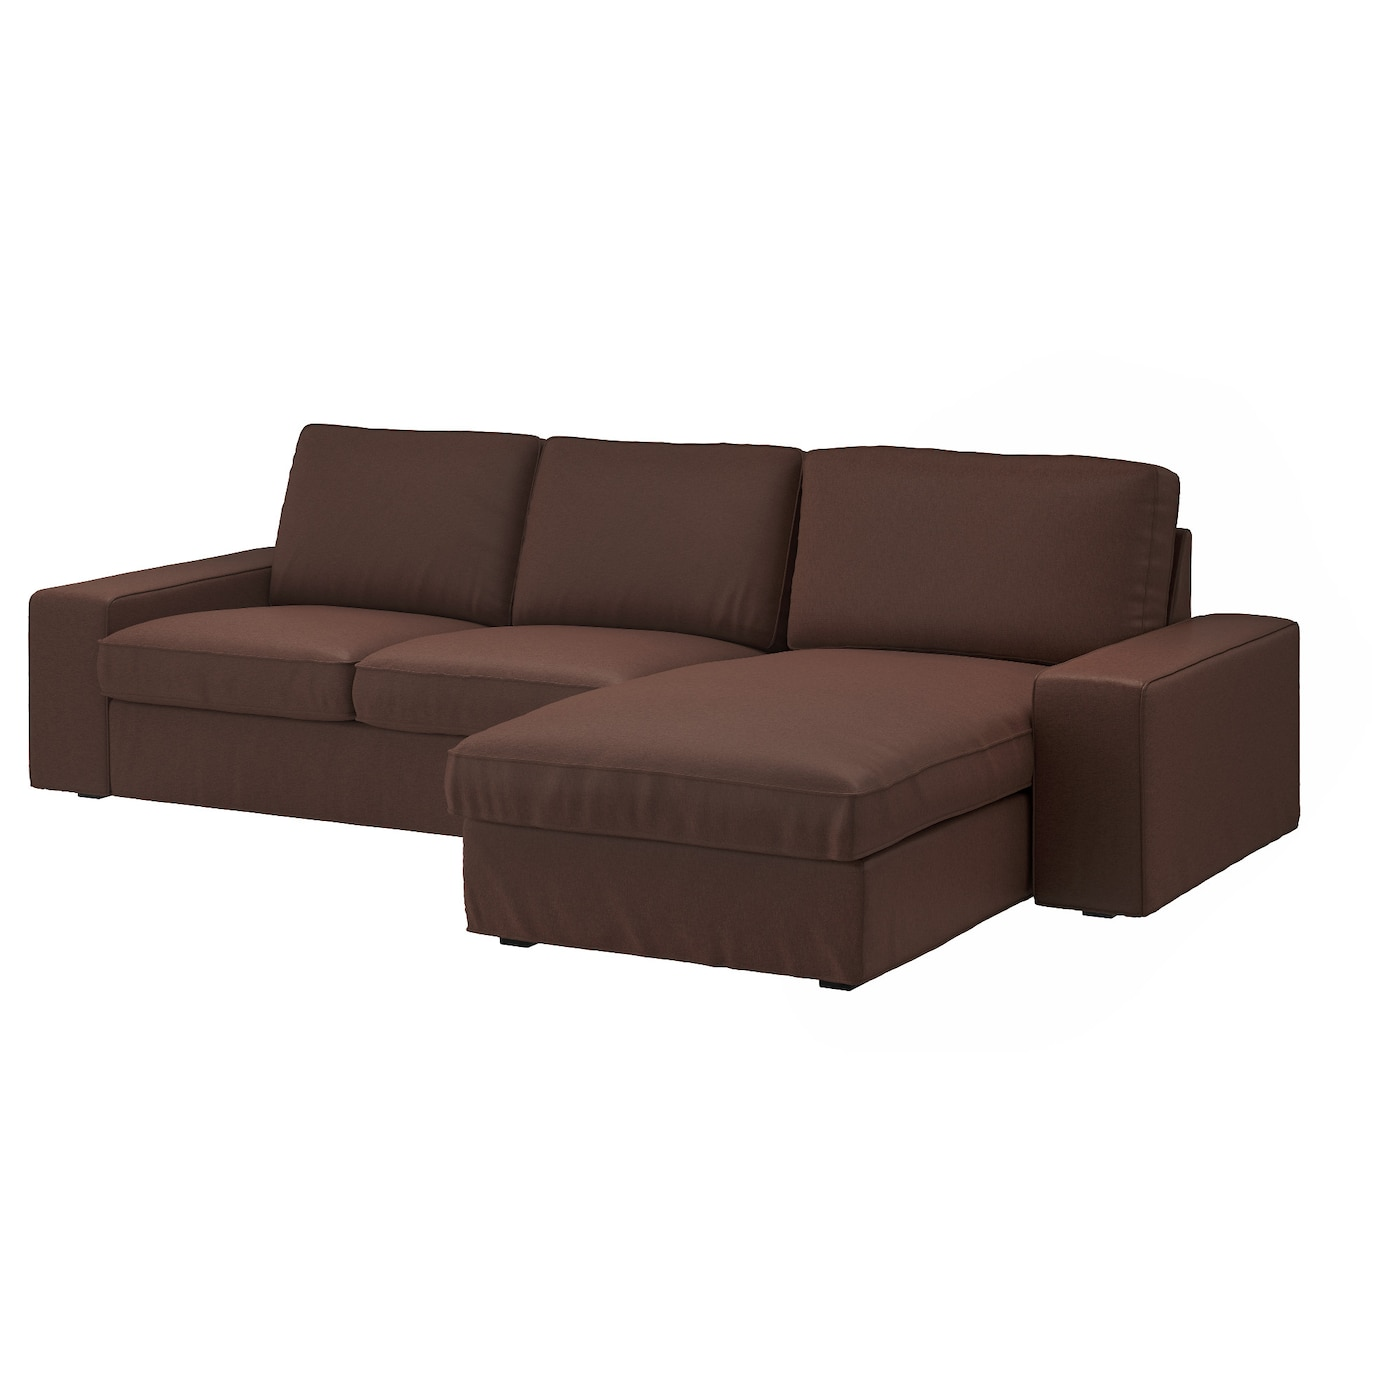 Kivik 3 seat sofa with chaise longue borred dark brown ikea for Brown chaise longue